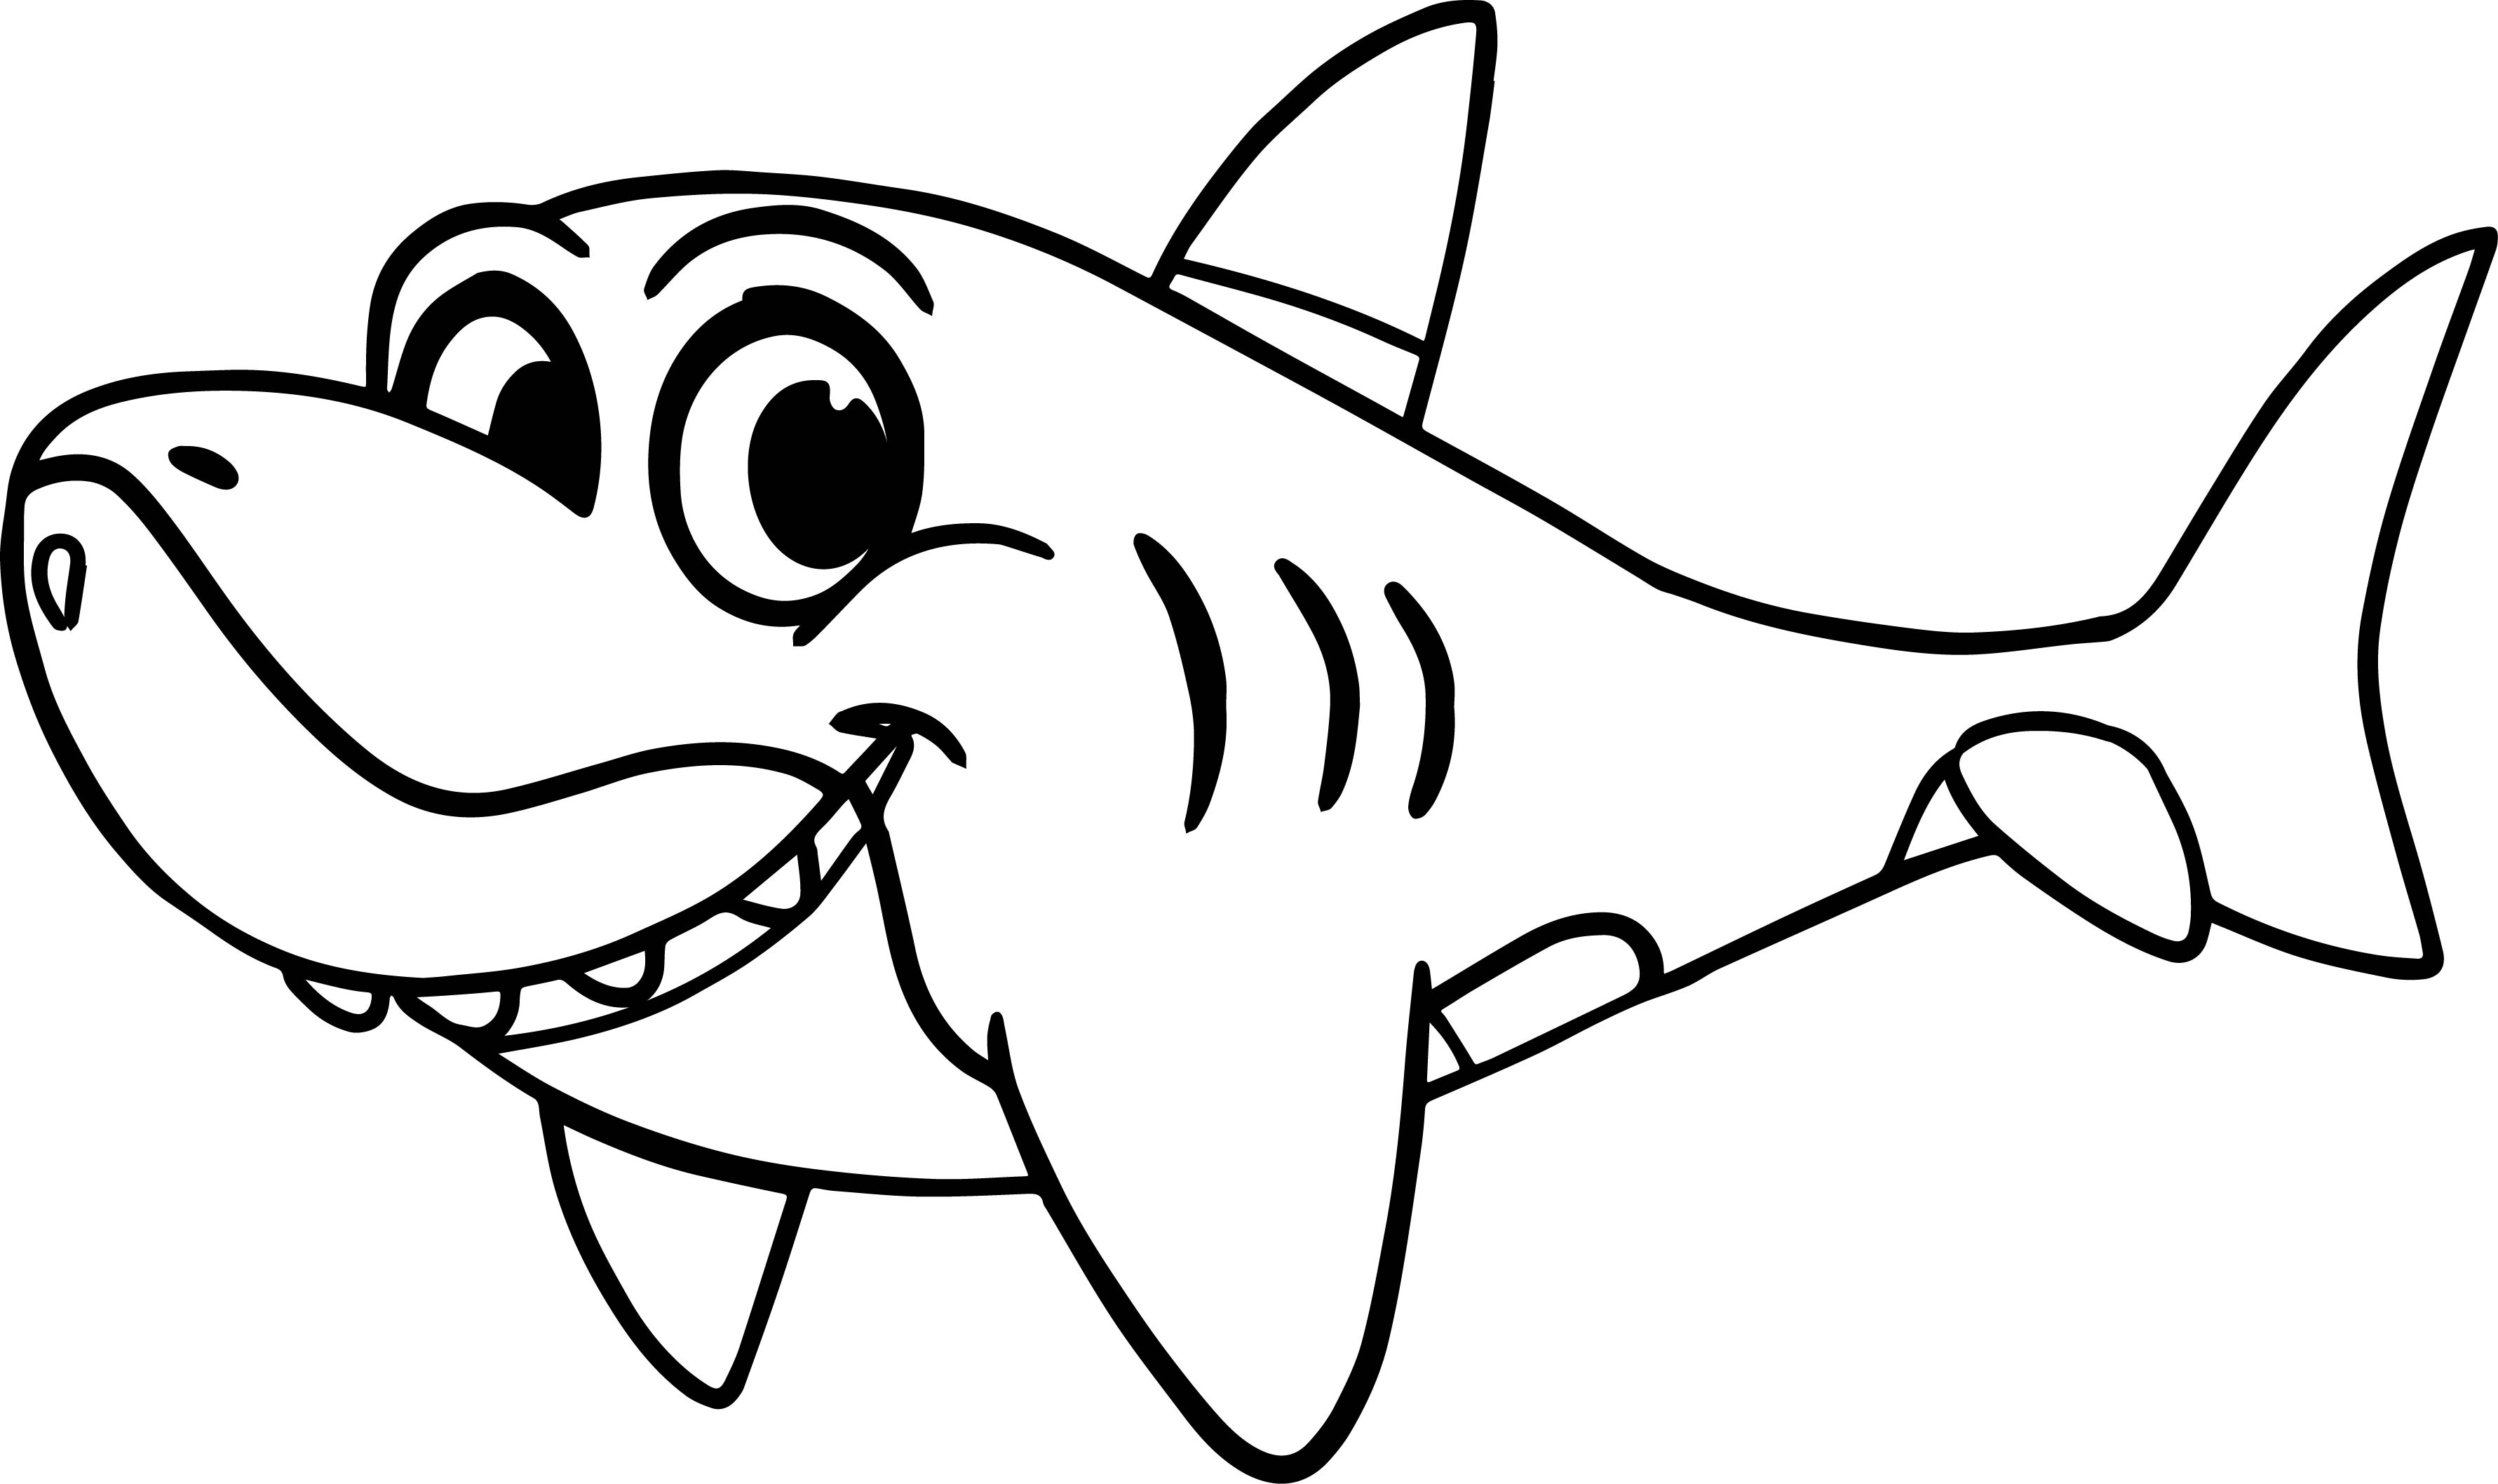 Morphle Cartoon My Cute Shark Coloring Page | Wecoloringpage